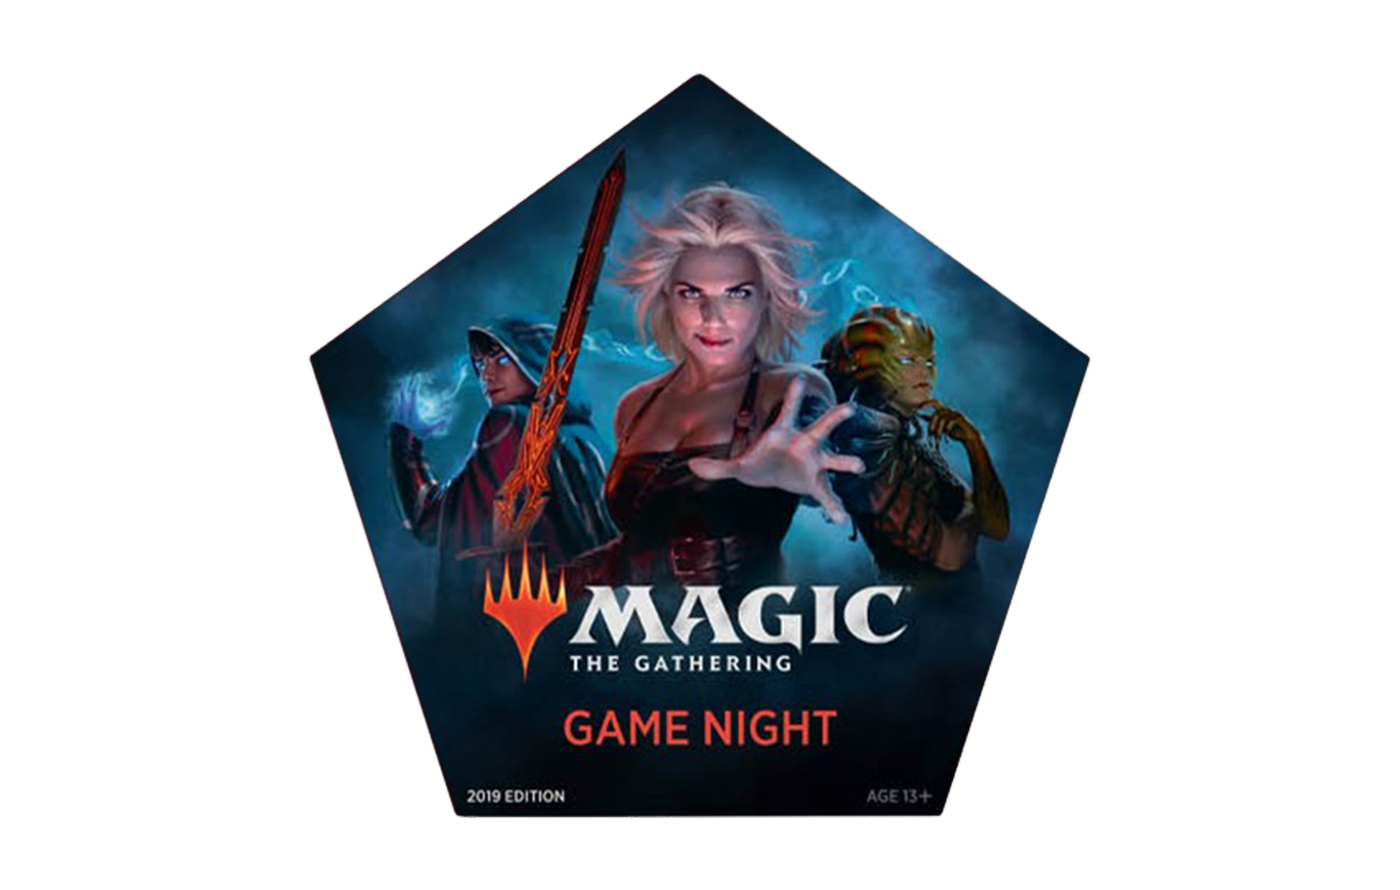 Game Night 2019